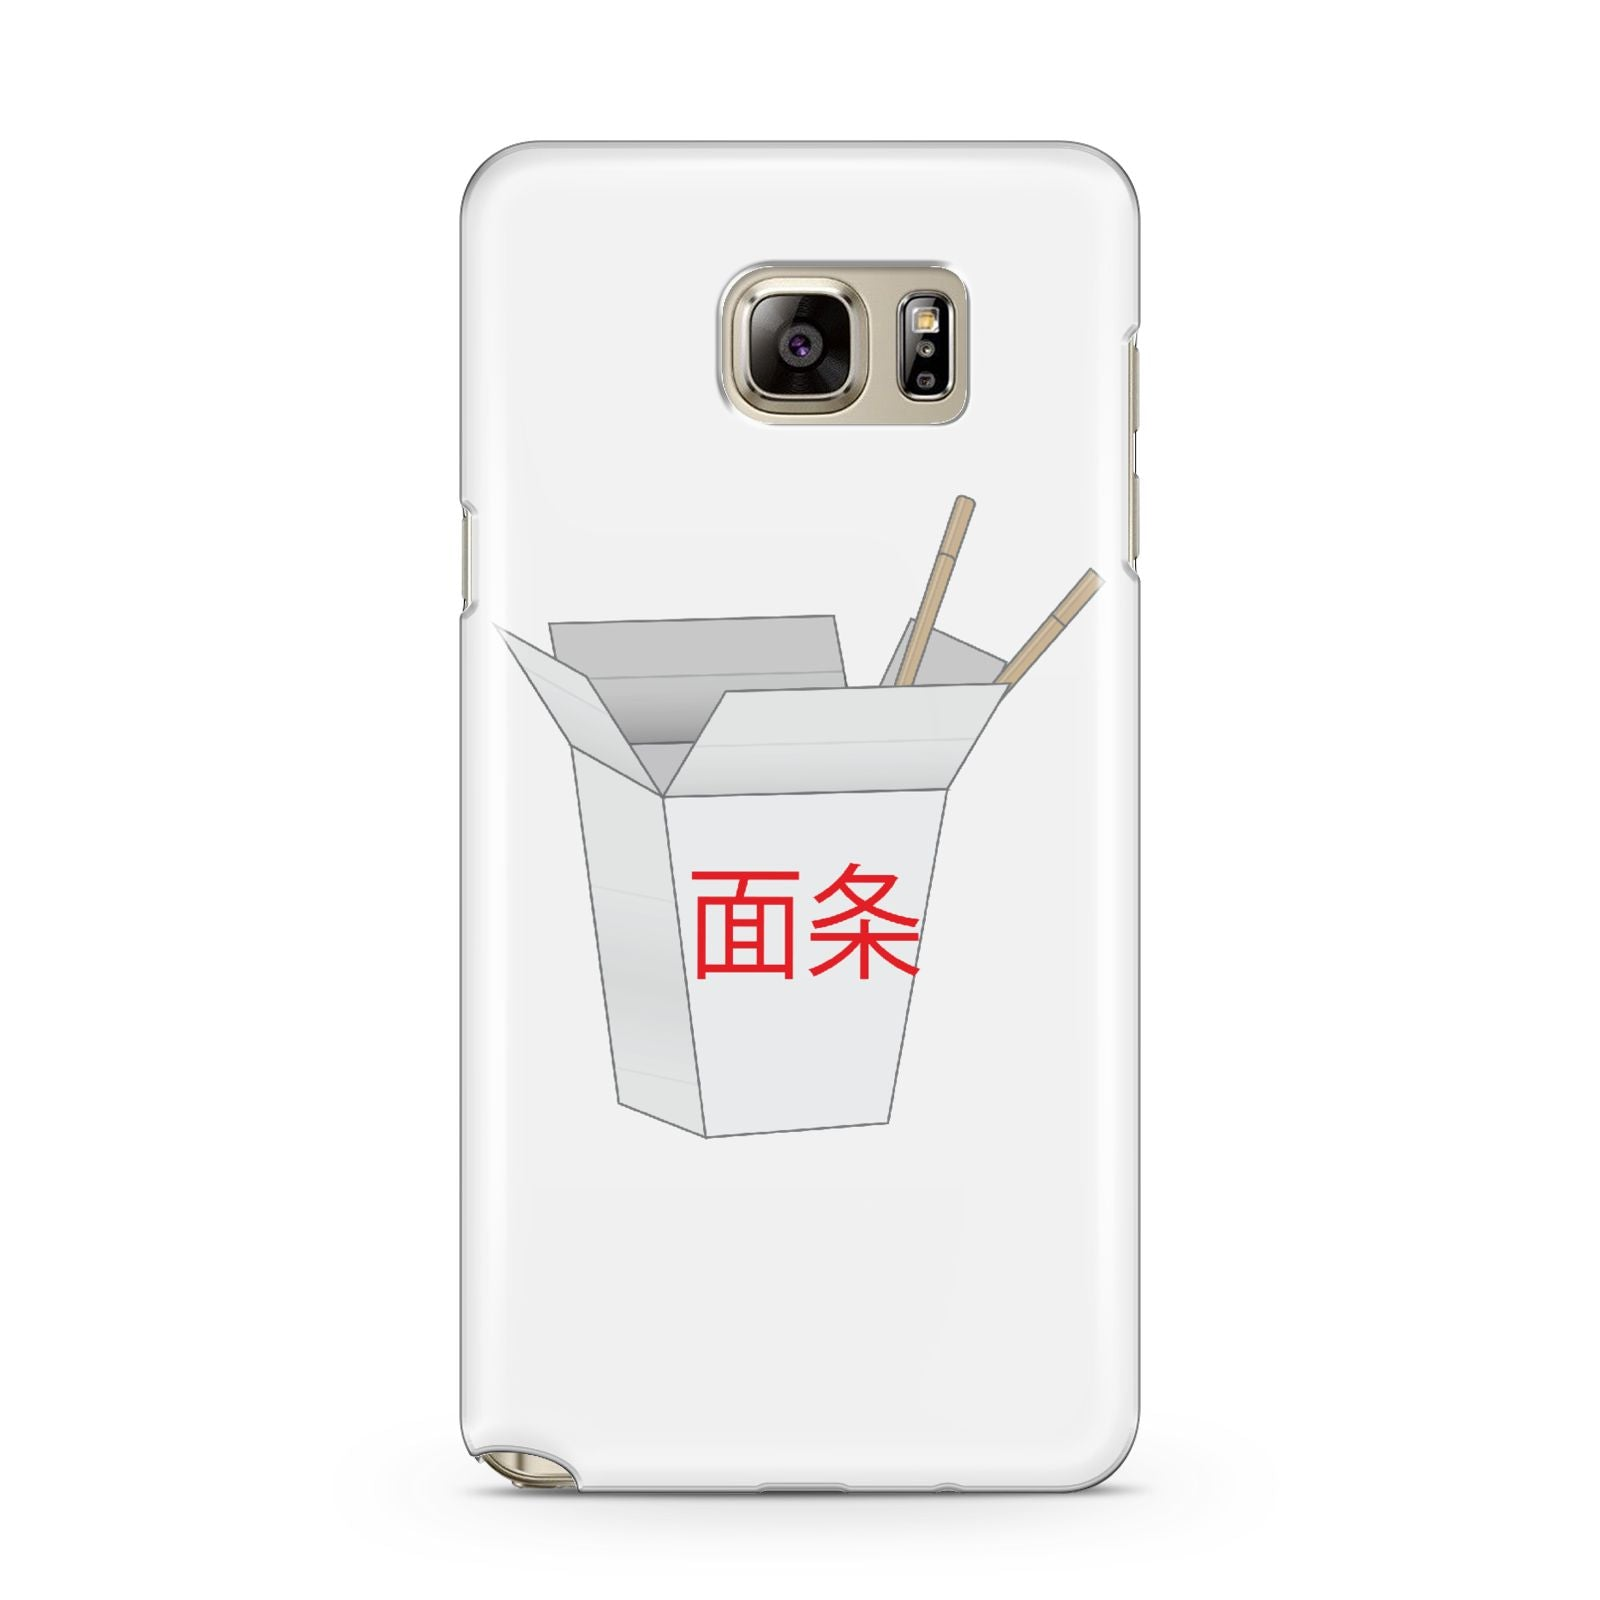 Chinese Takeaway Box Samsung Galaxy Note 5 Case